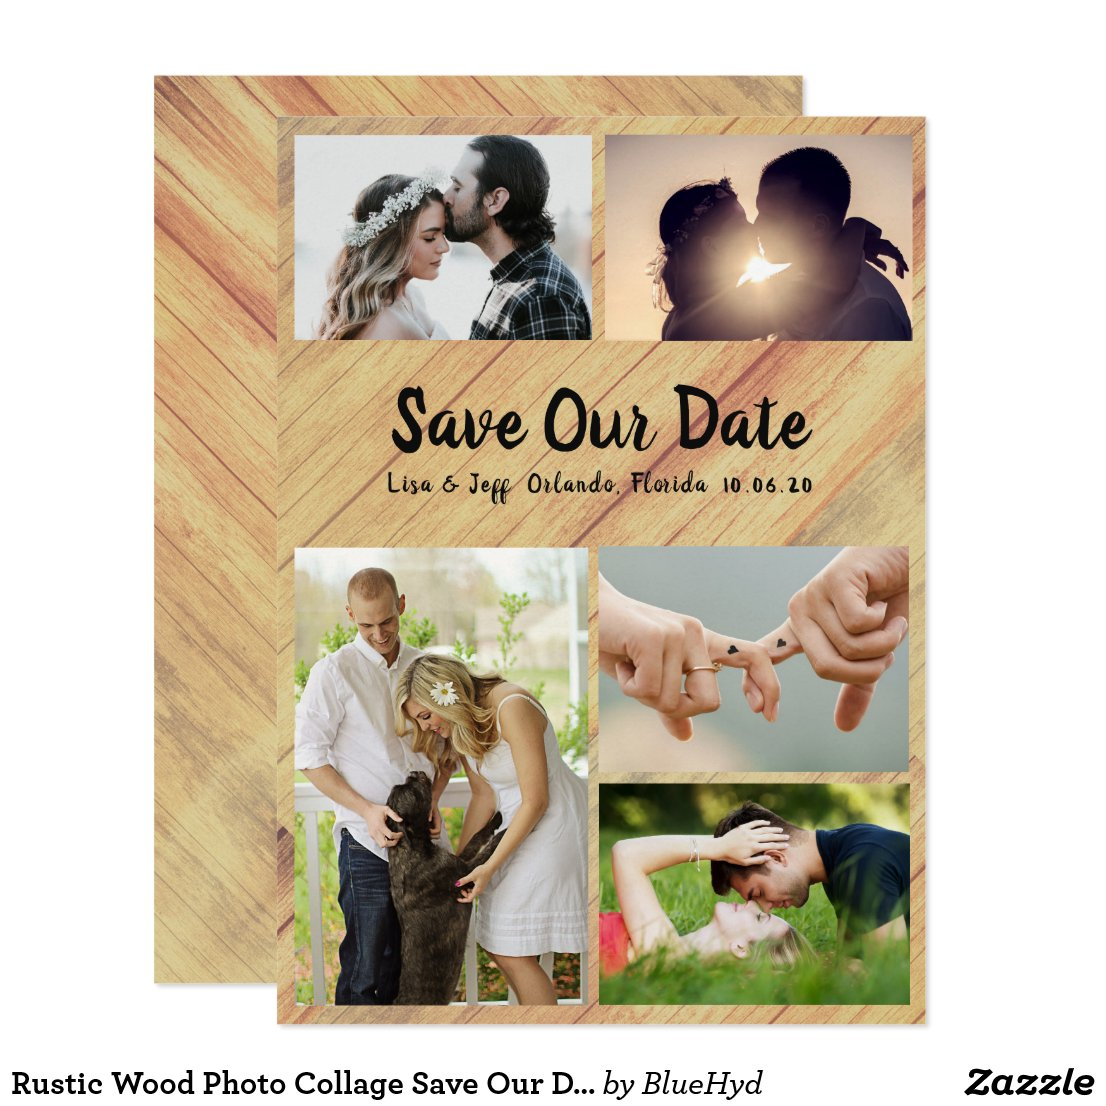 Rustic Wood Photo Collage Save Our Date Cards